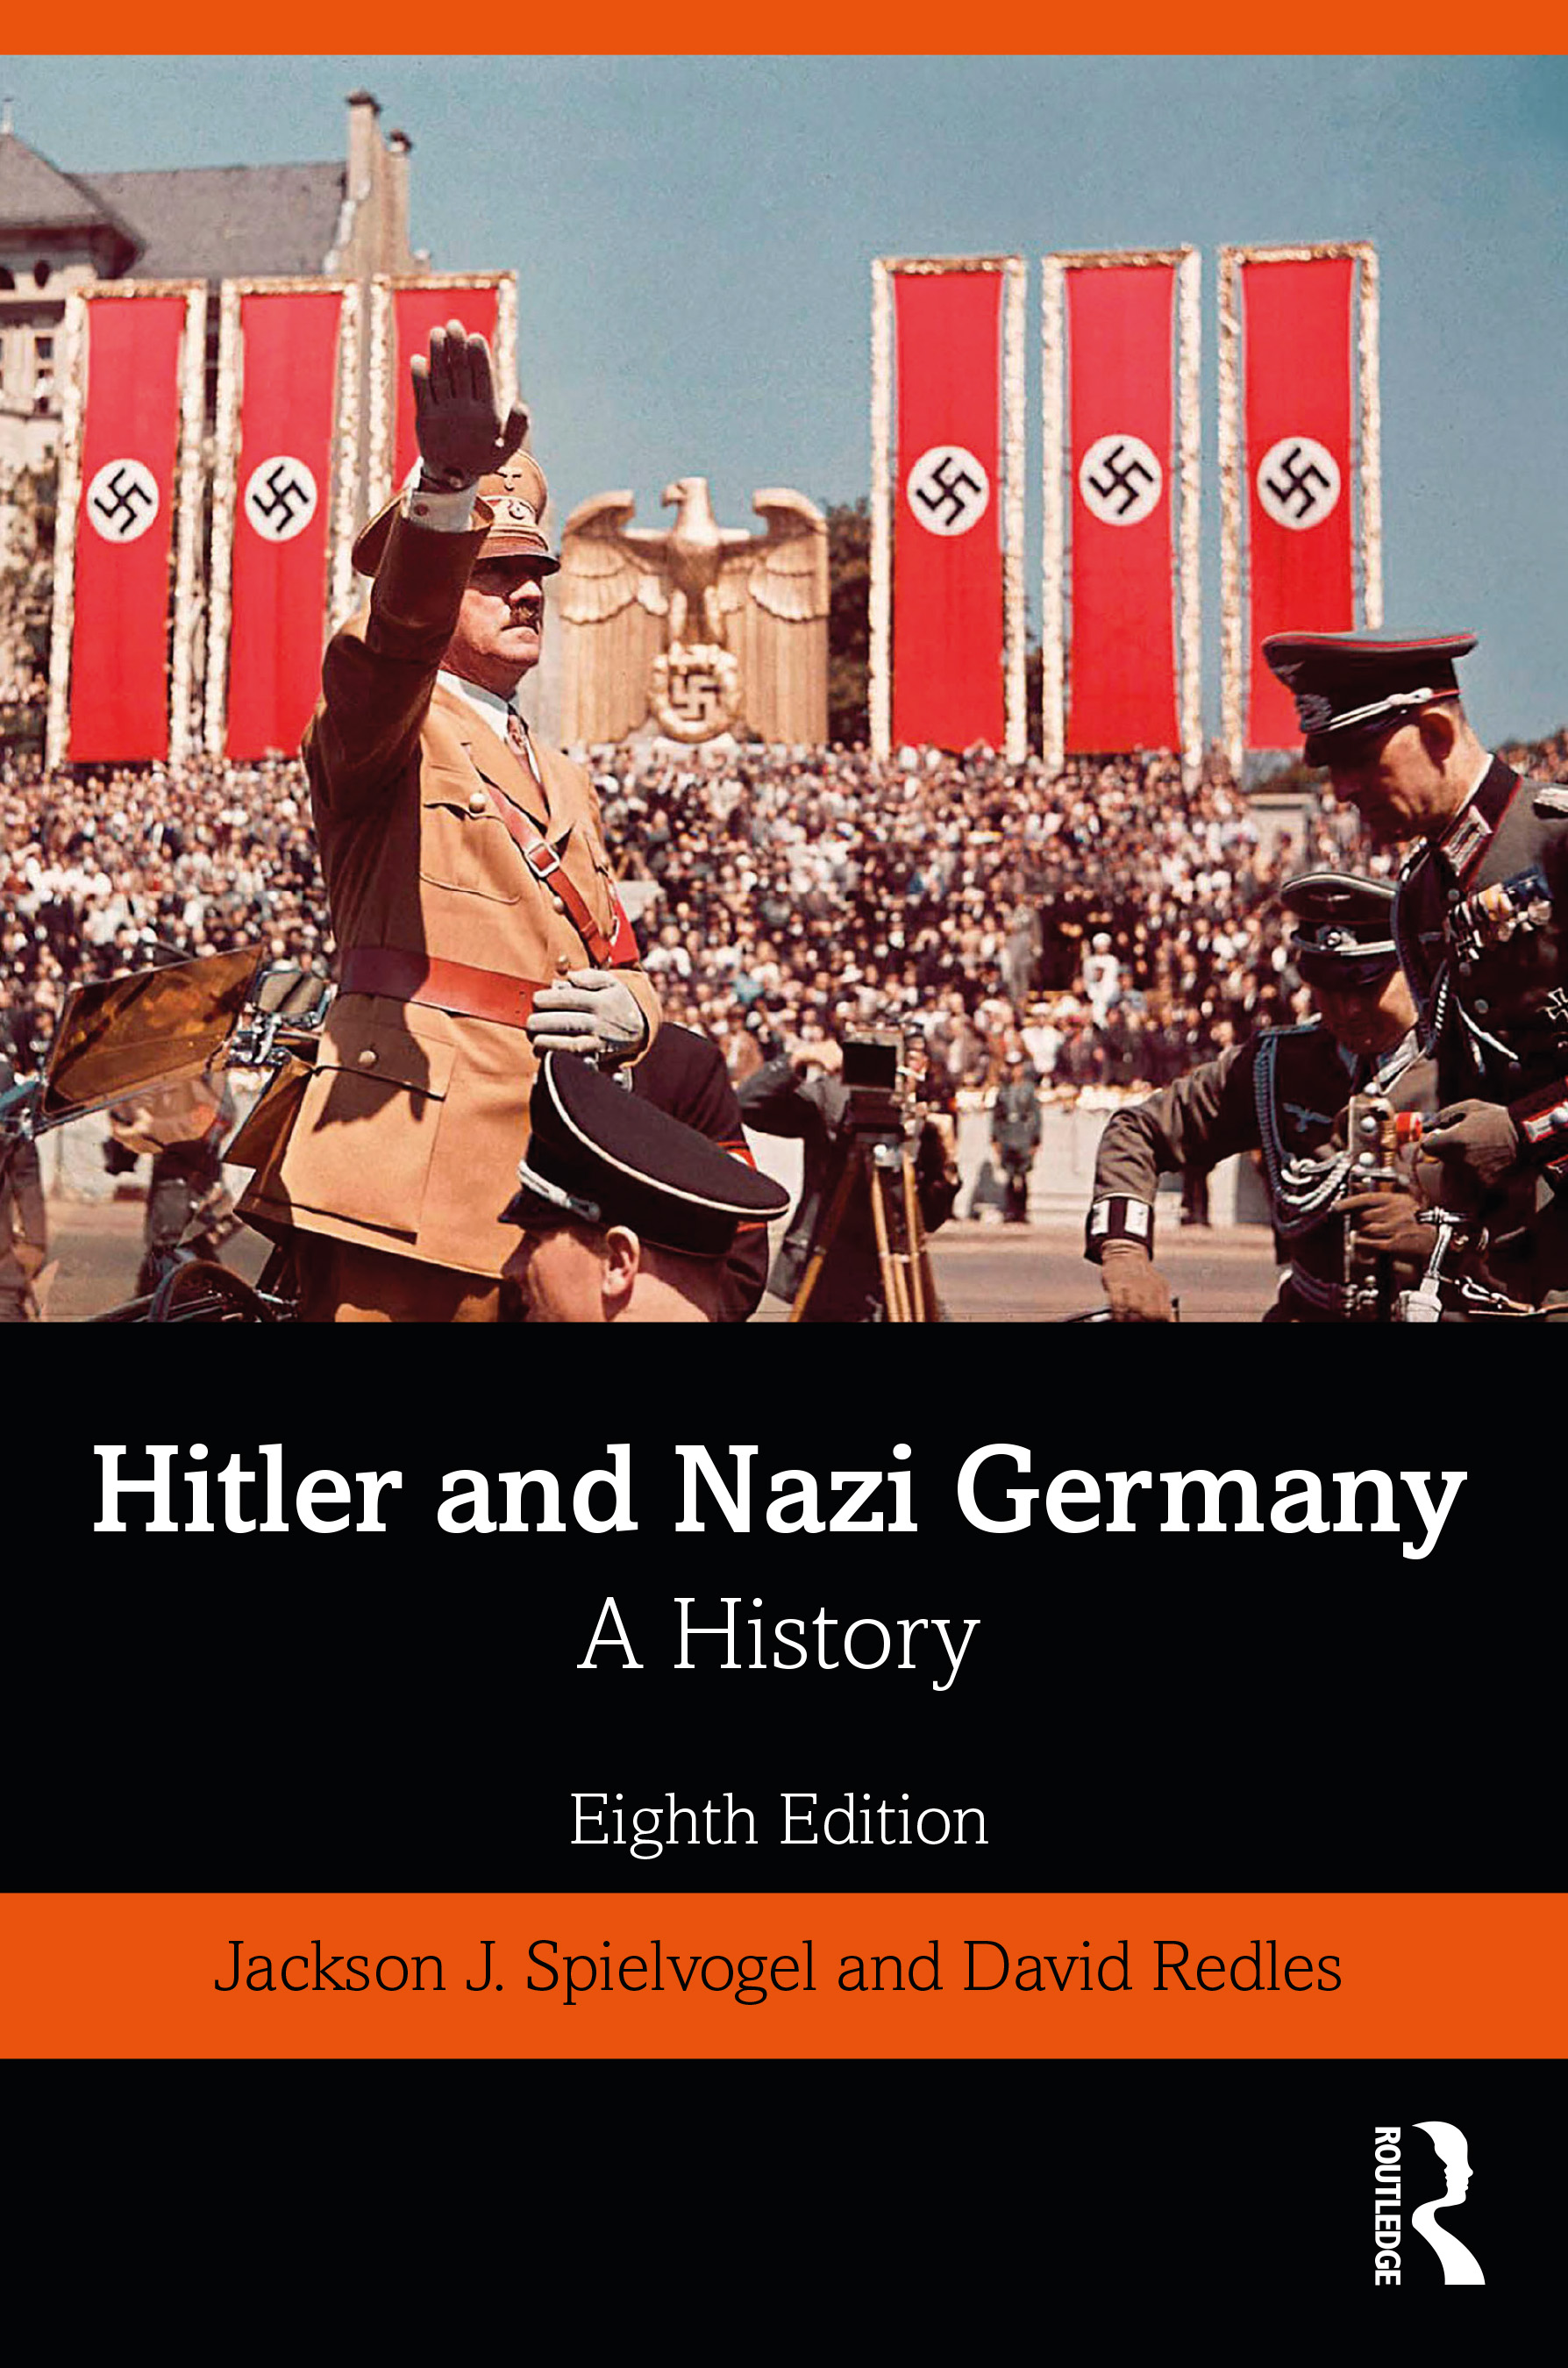 Hitler and Nazi Germany: A History book cover